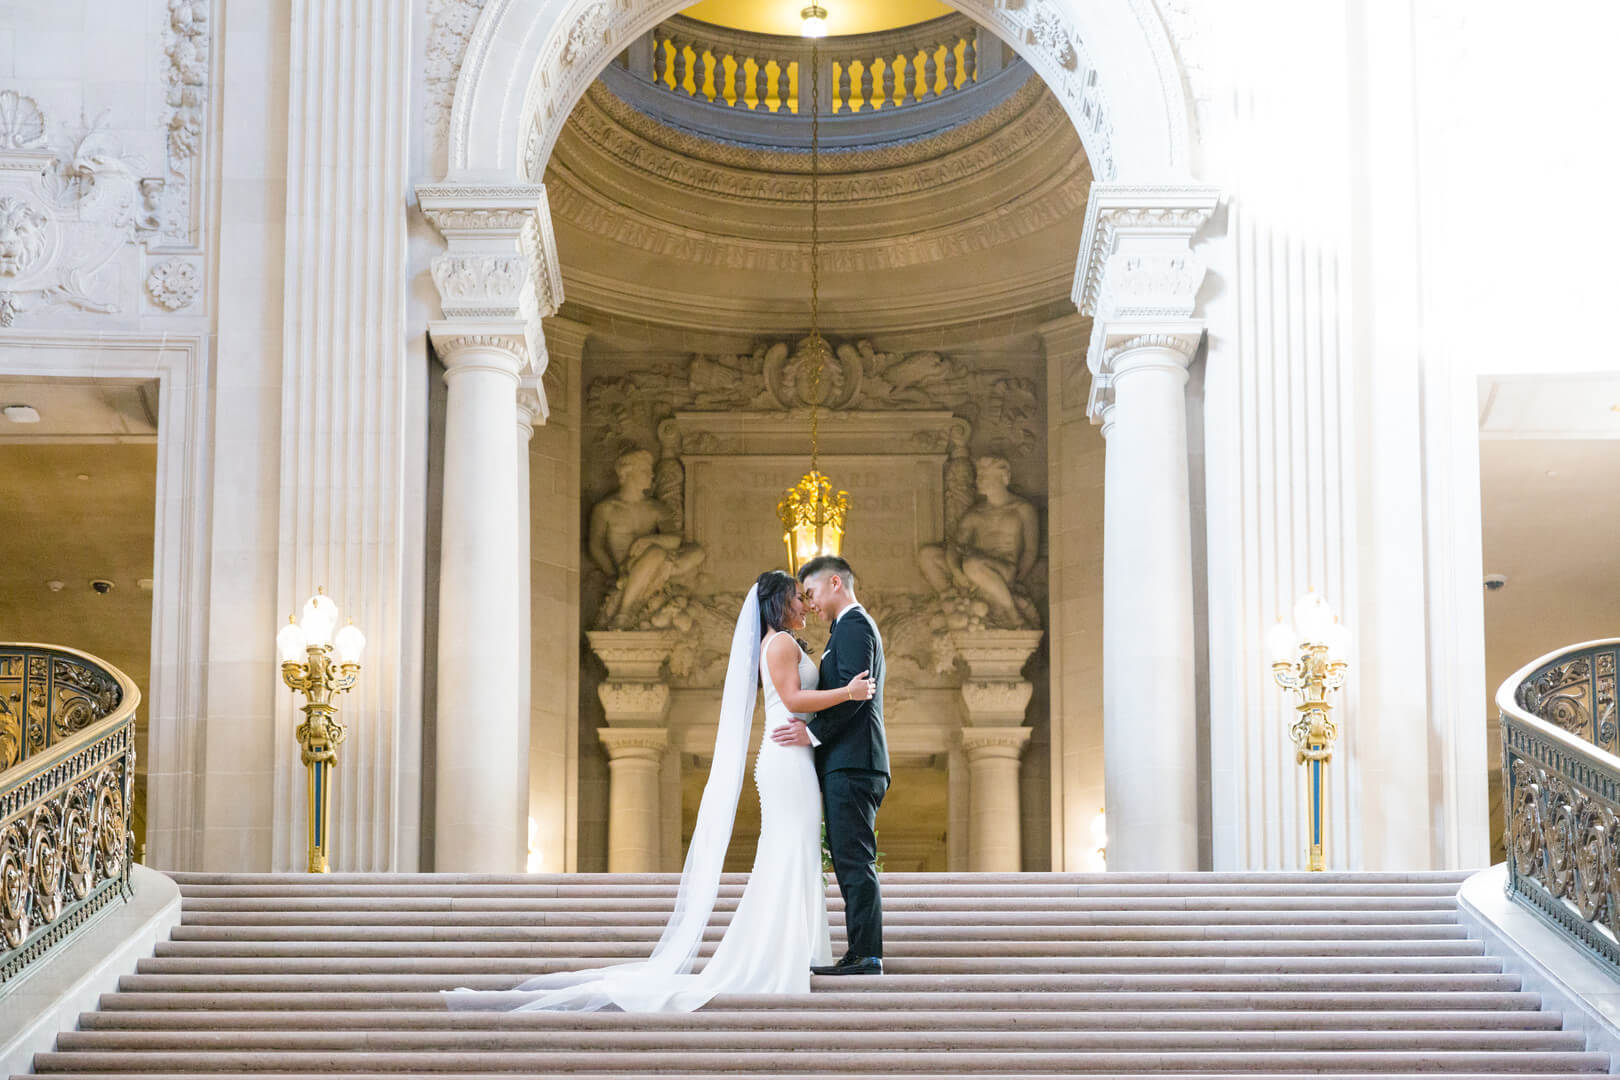 Maya and Kevin SF City Hall wedding photo on the grand staircase